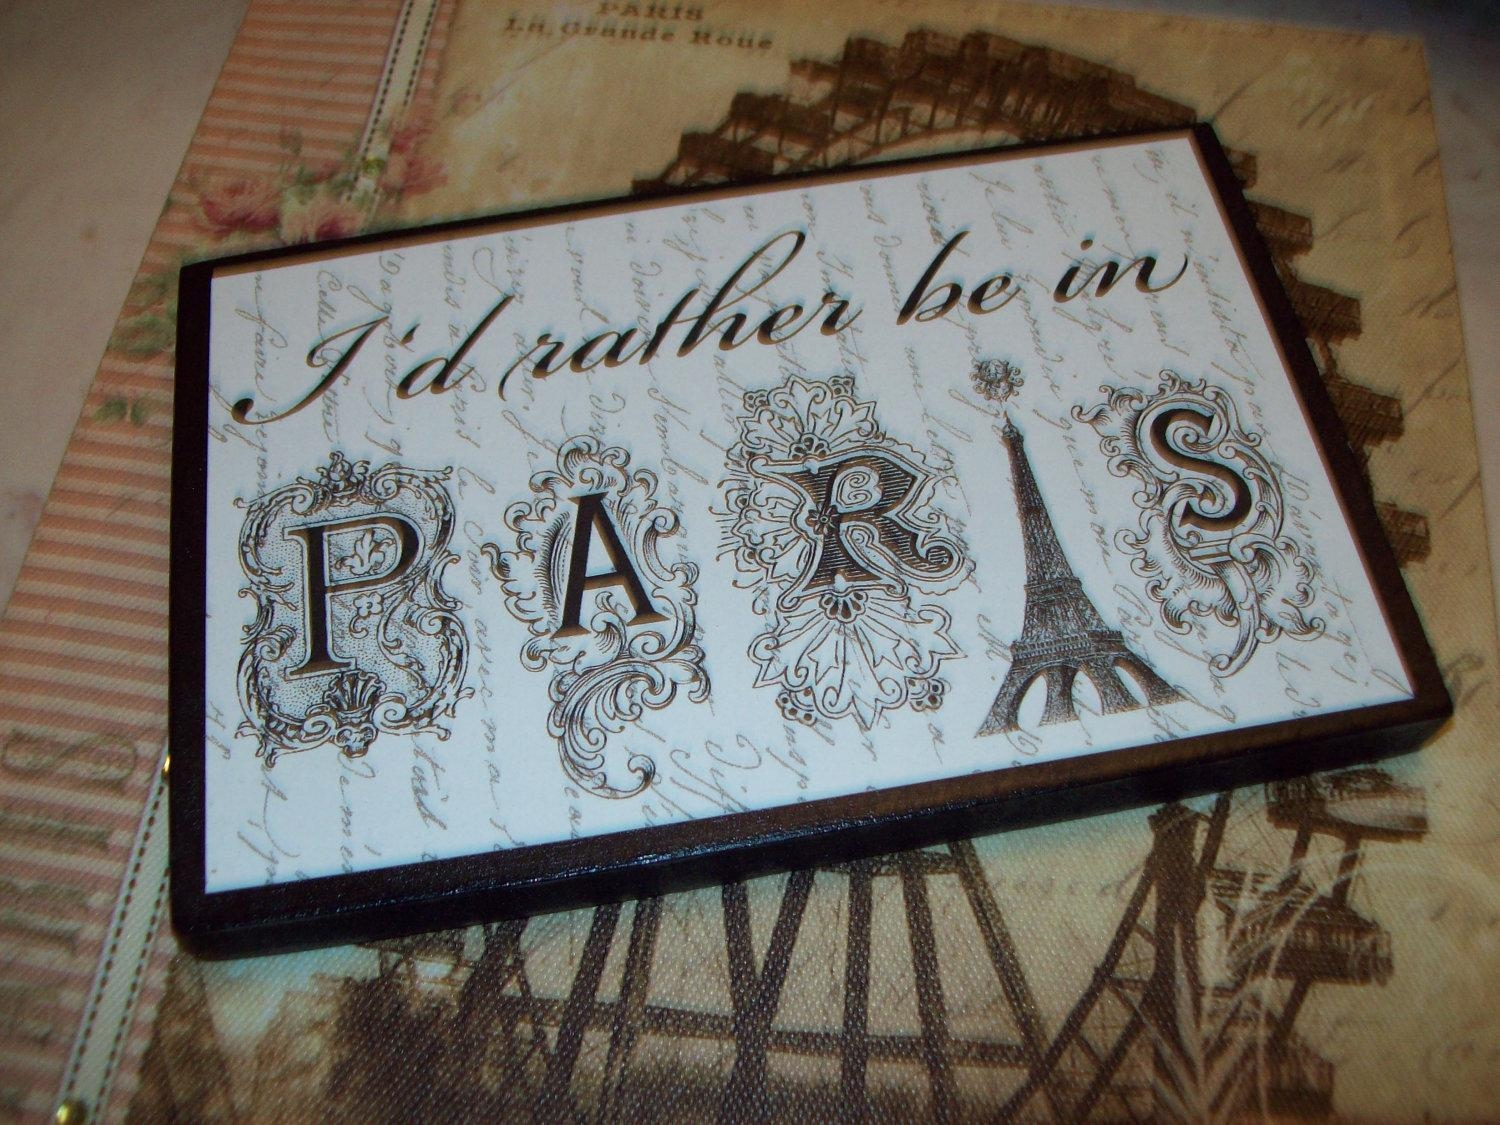 I'd Rather Be In Paris Shelf Sitter Signpars Decorparis Regarding Paris Themed Wall Art (Image 9 of 20)